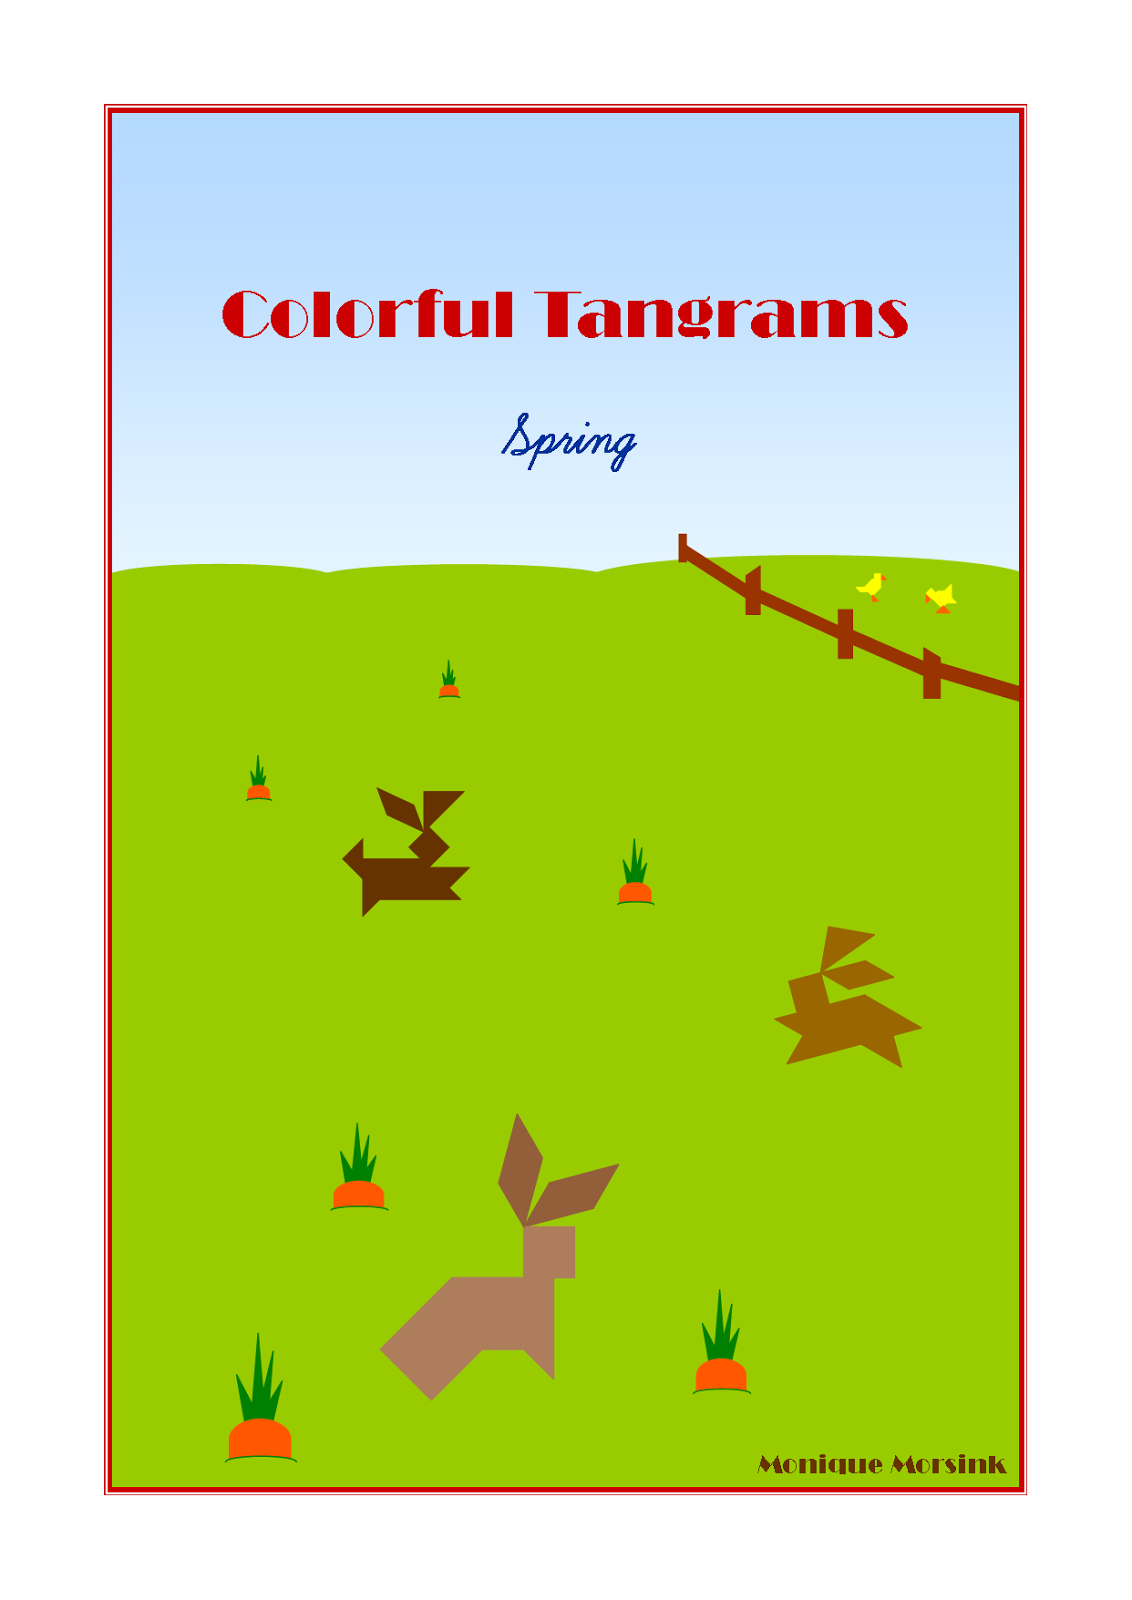 Colorful Tangrams Spring Easter